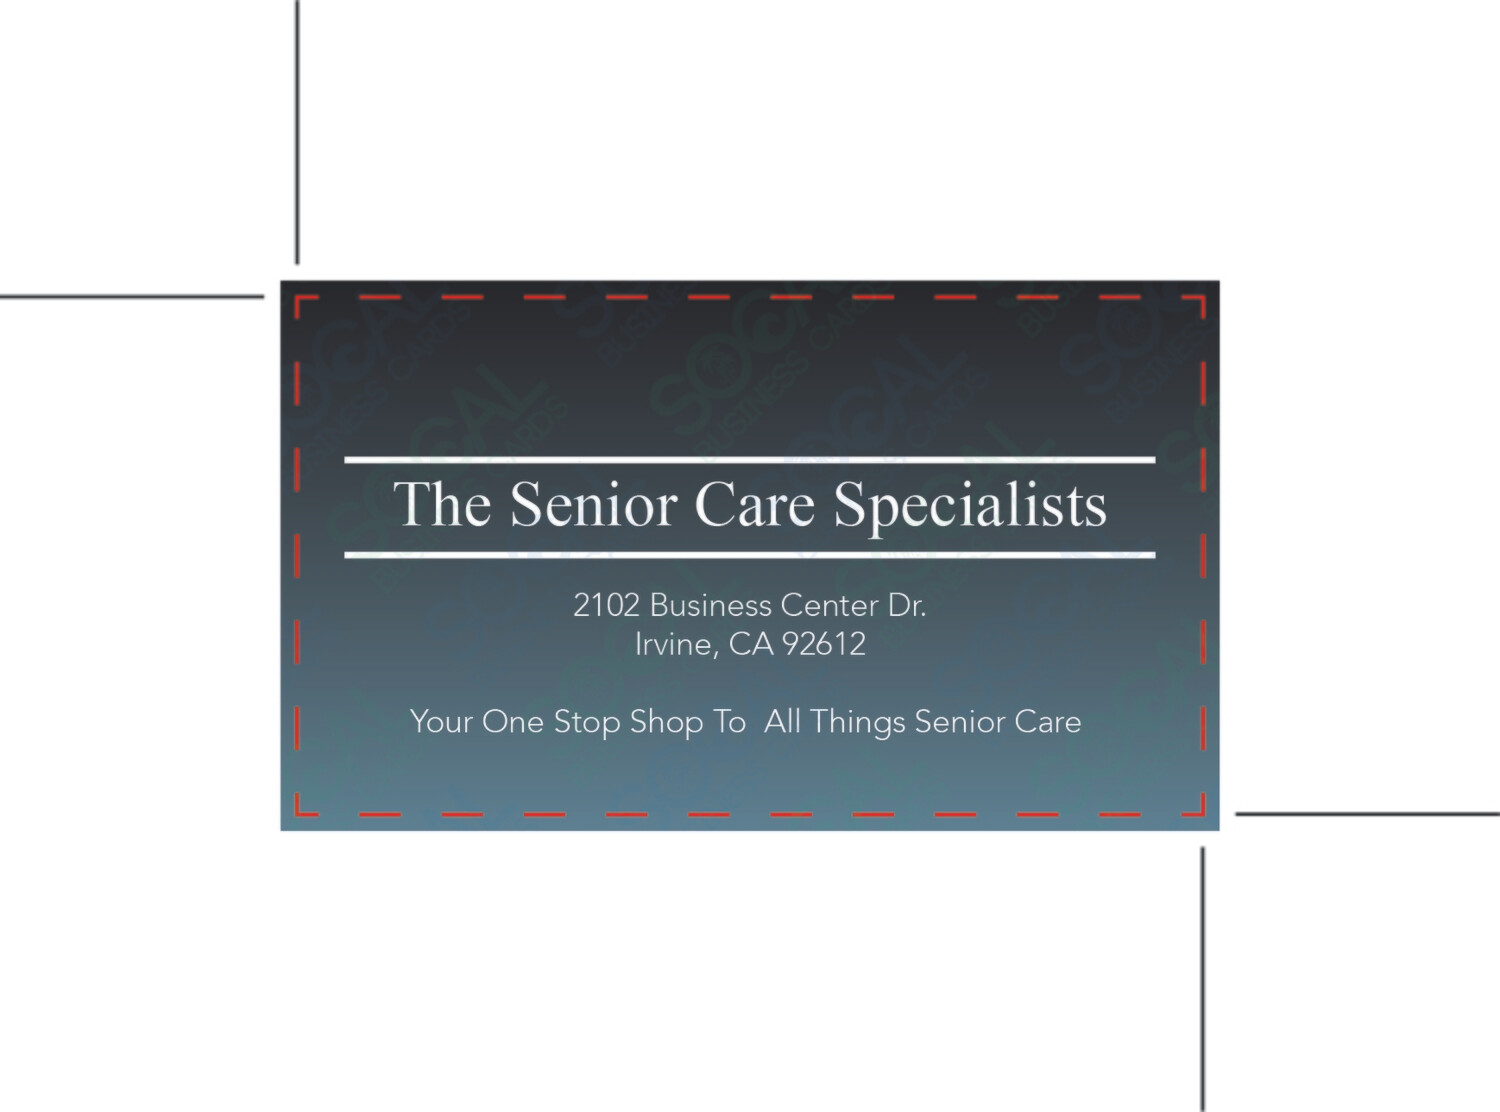 The Senior Care Specialists - Business Cards